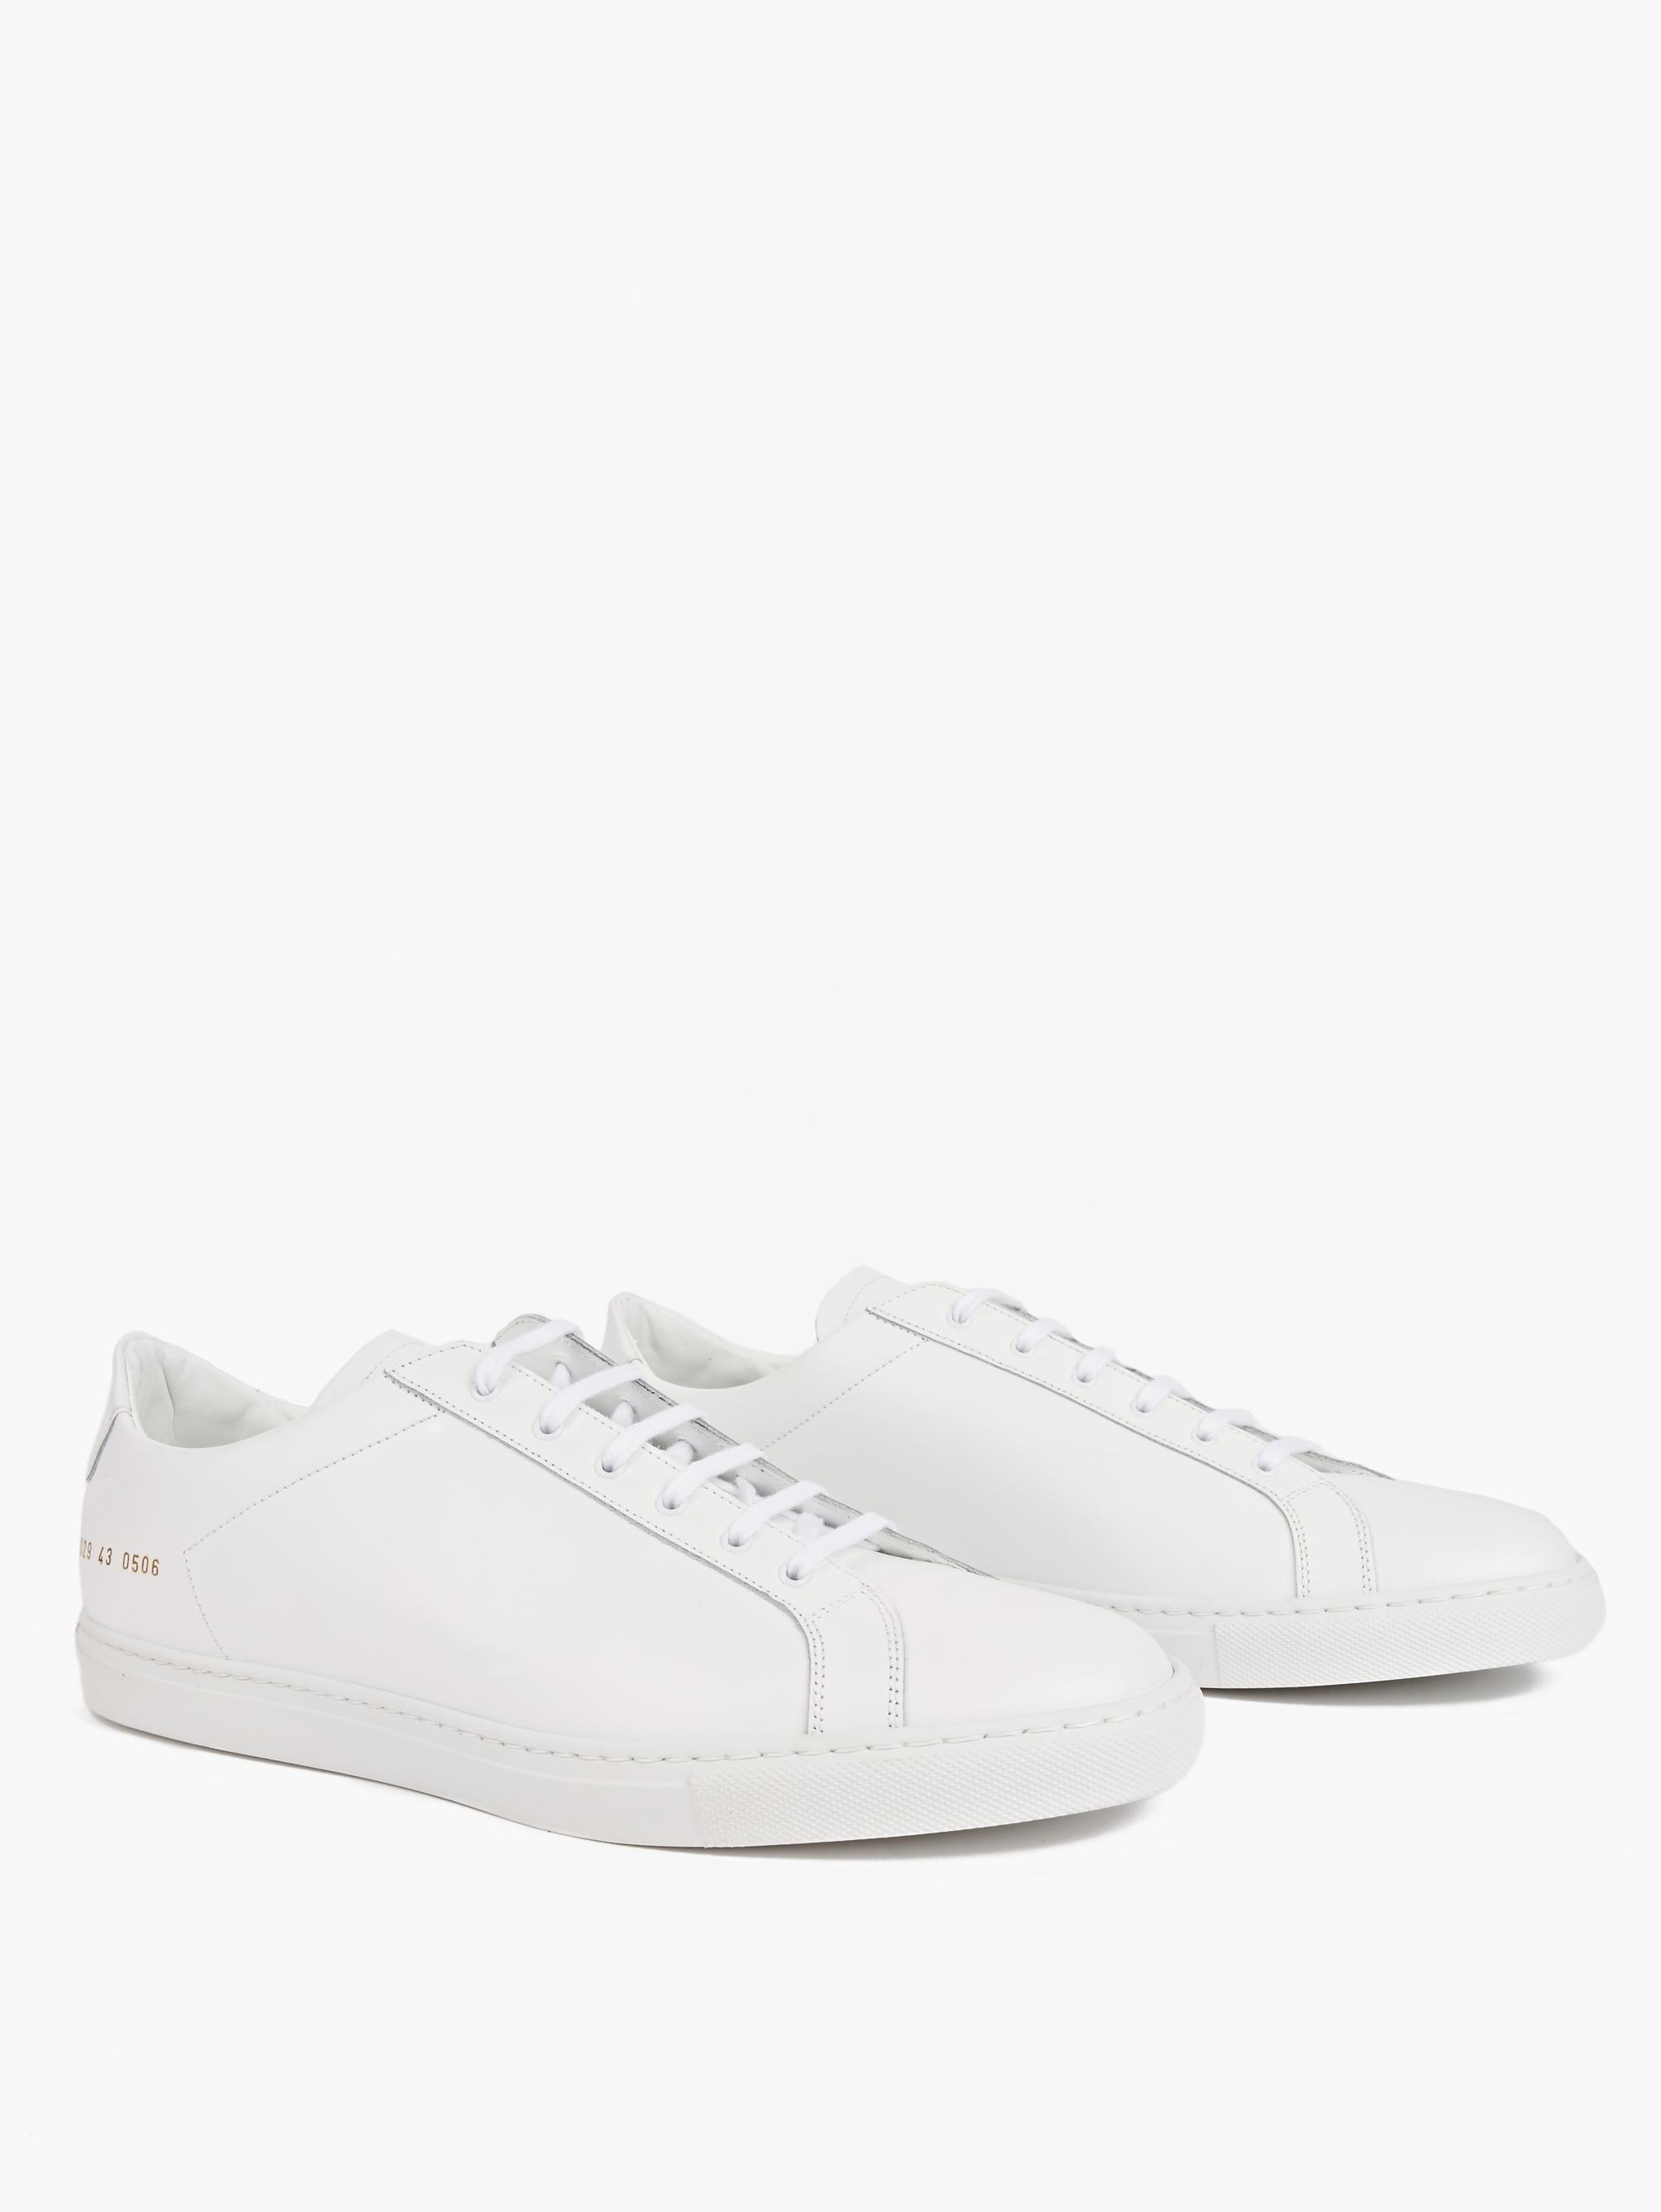 common projects white leather retro low sneakers for men lyst. Black Bedroom Furniture Sets. Home Design Ideas